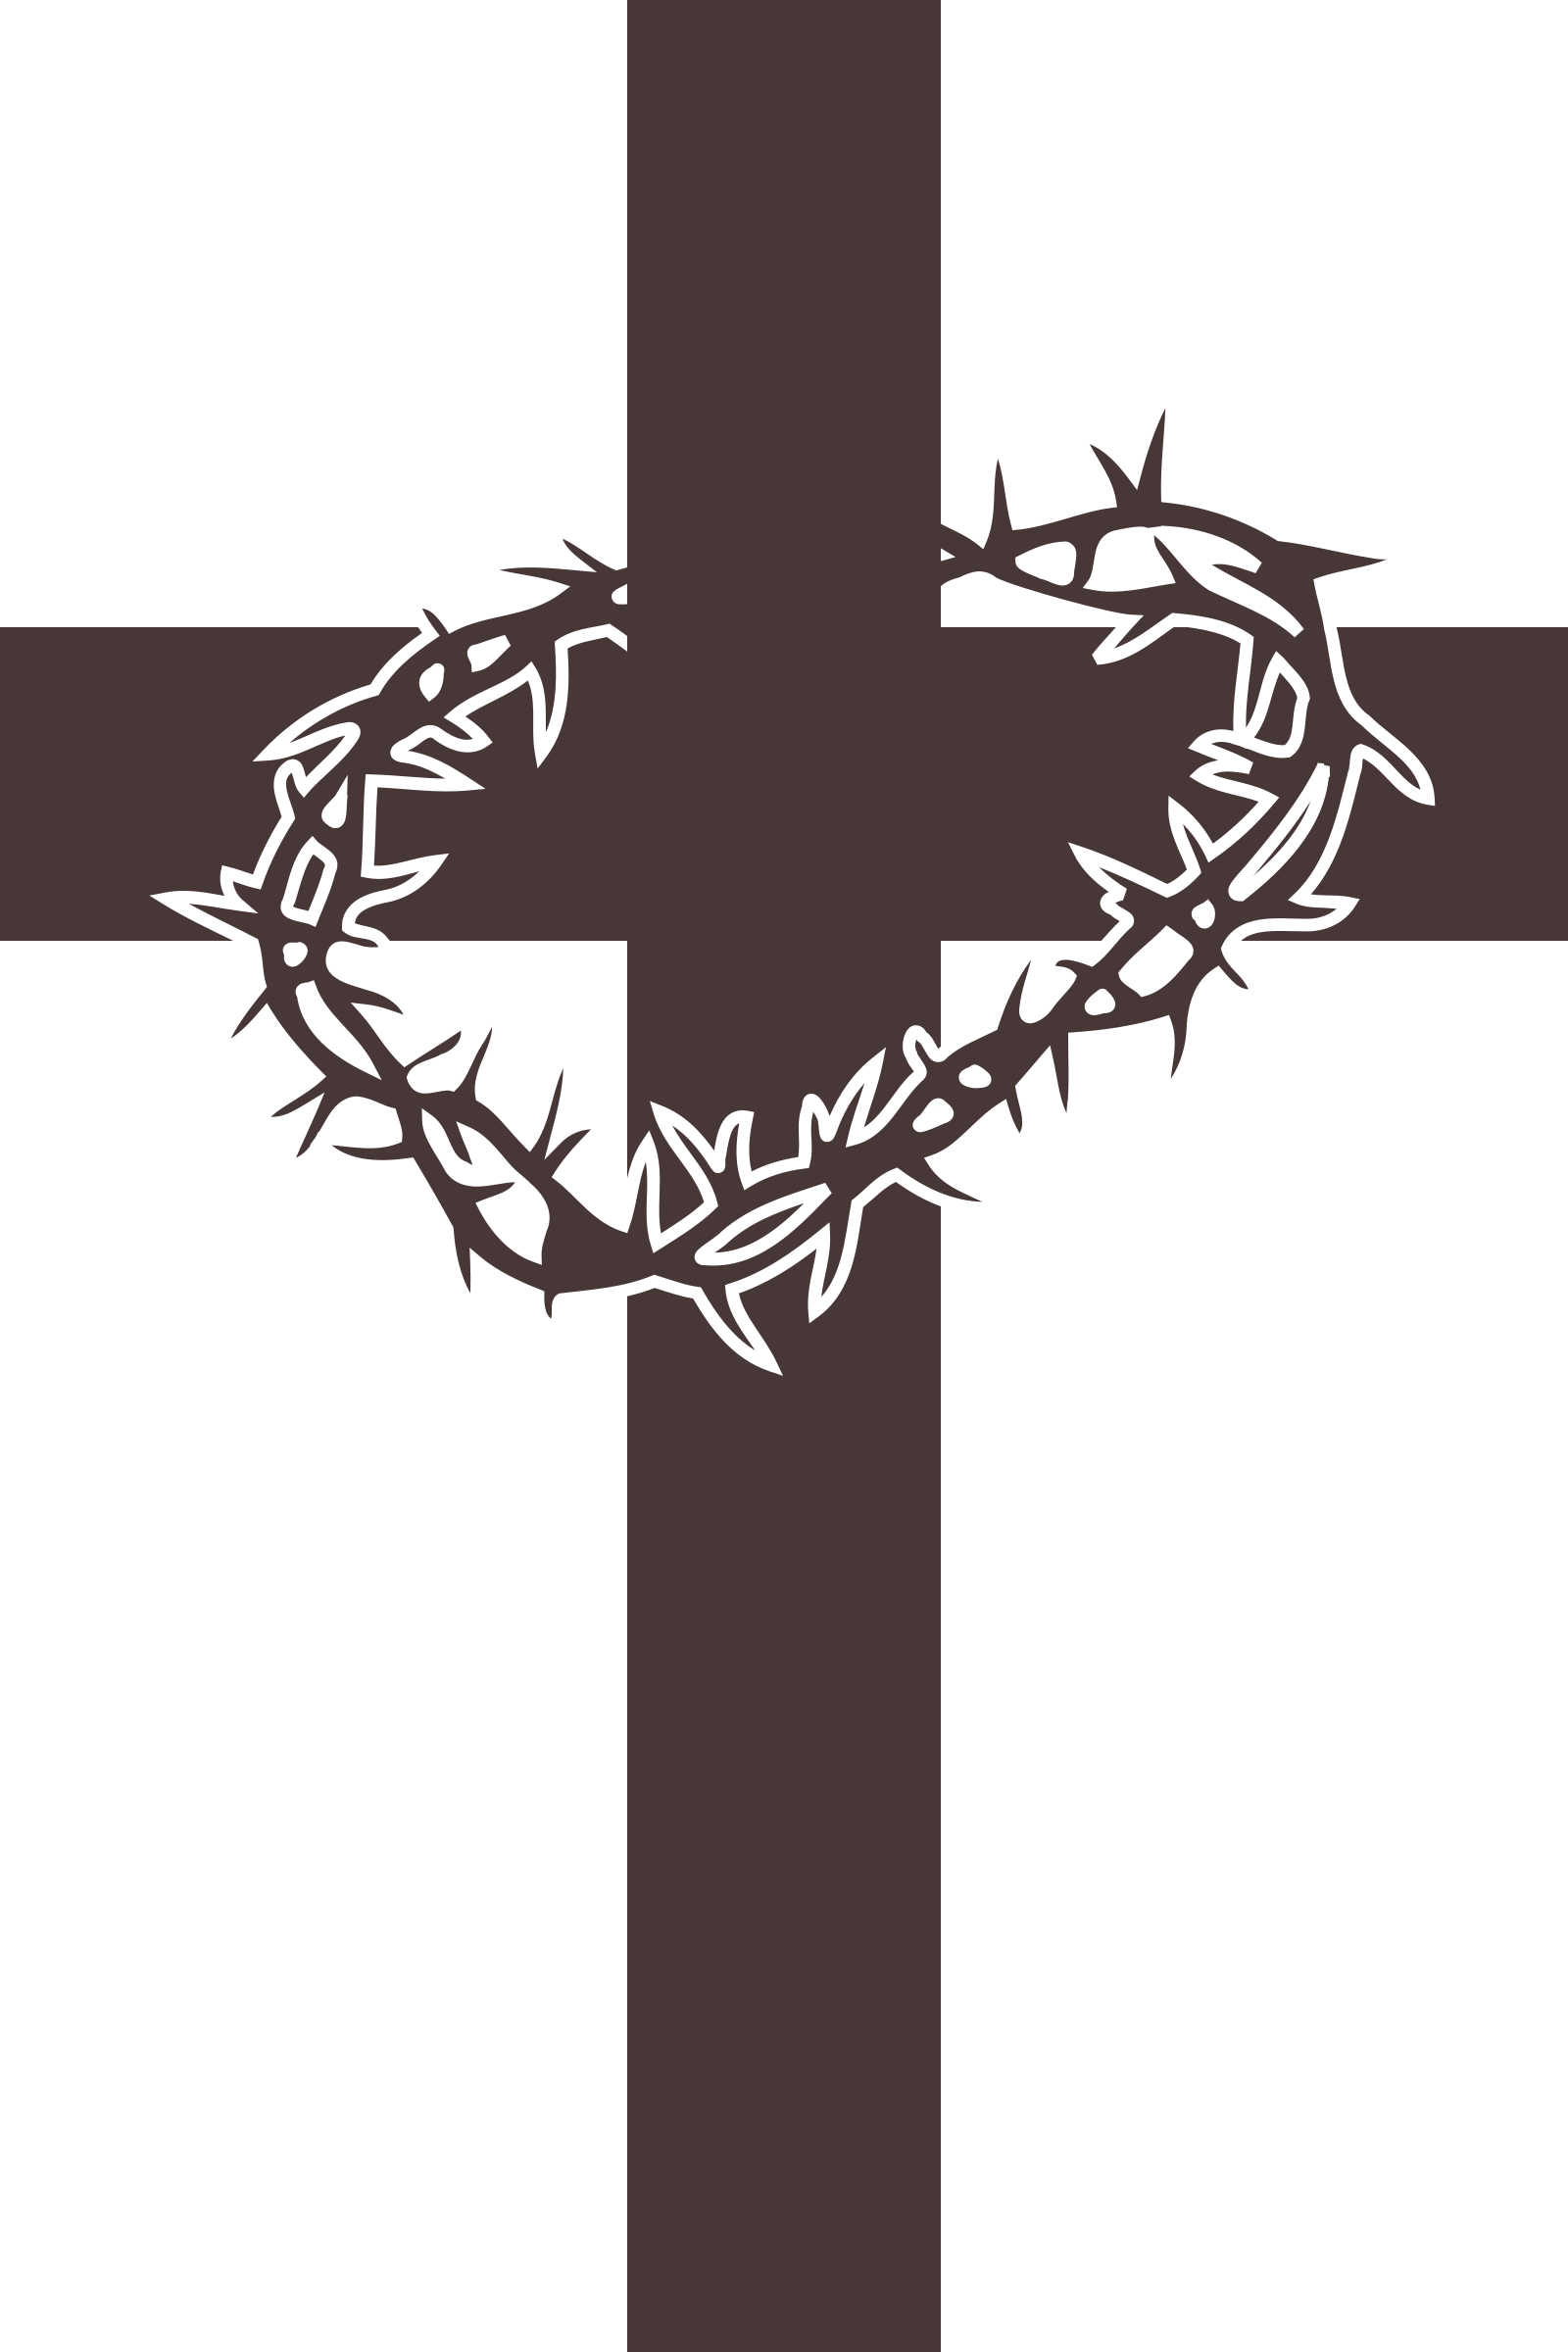 Cross and thorns.